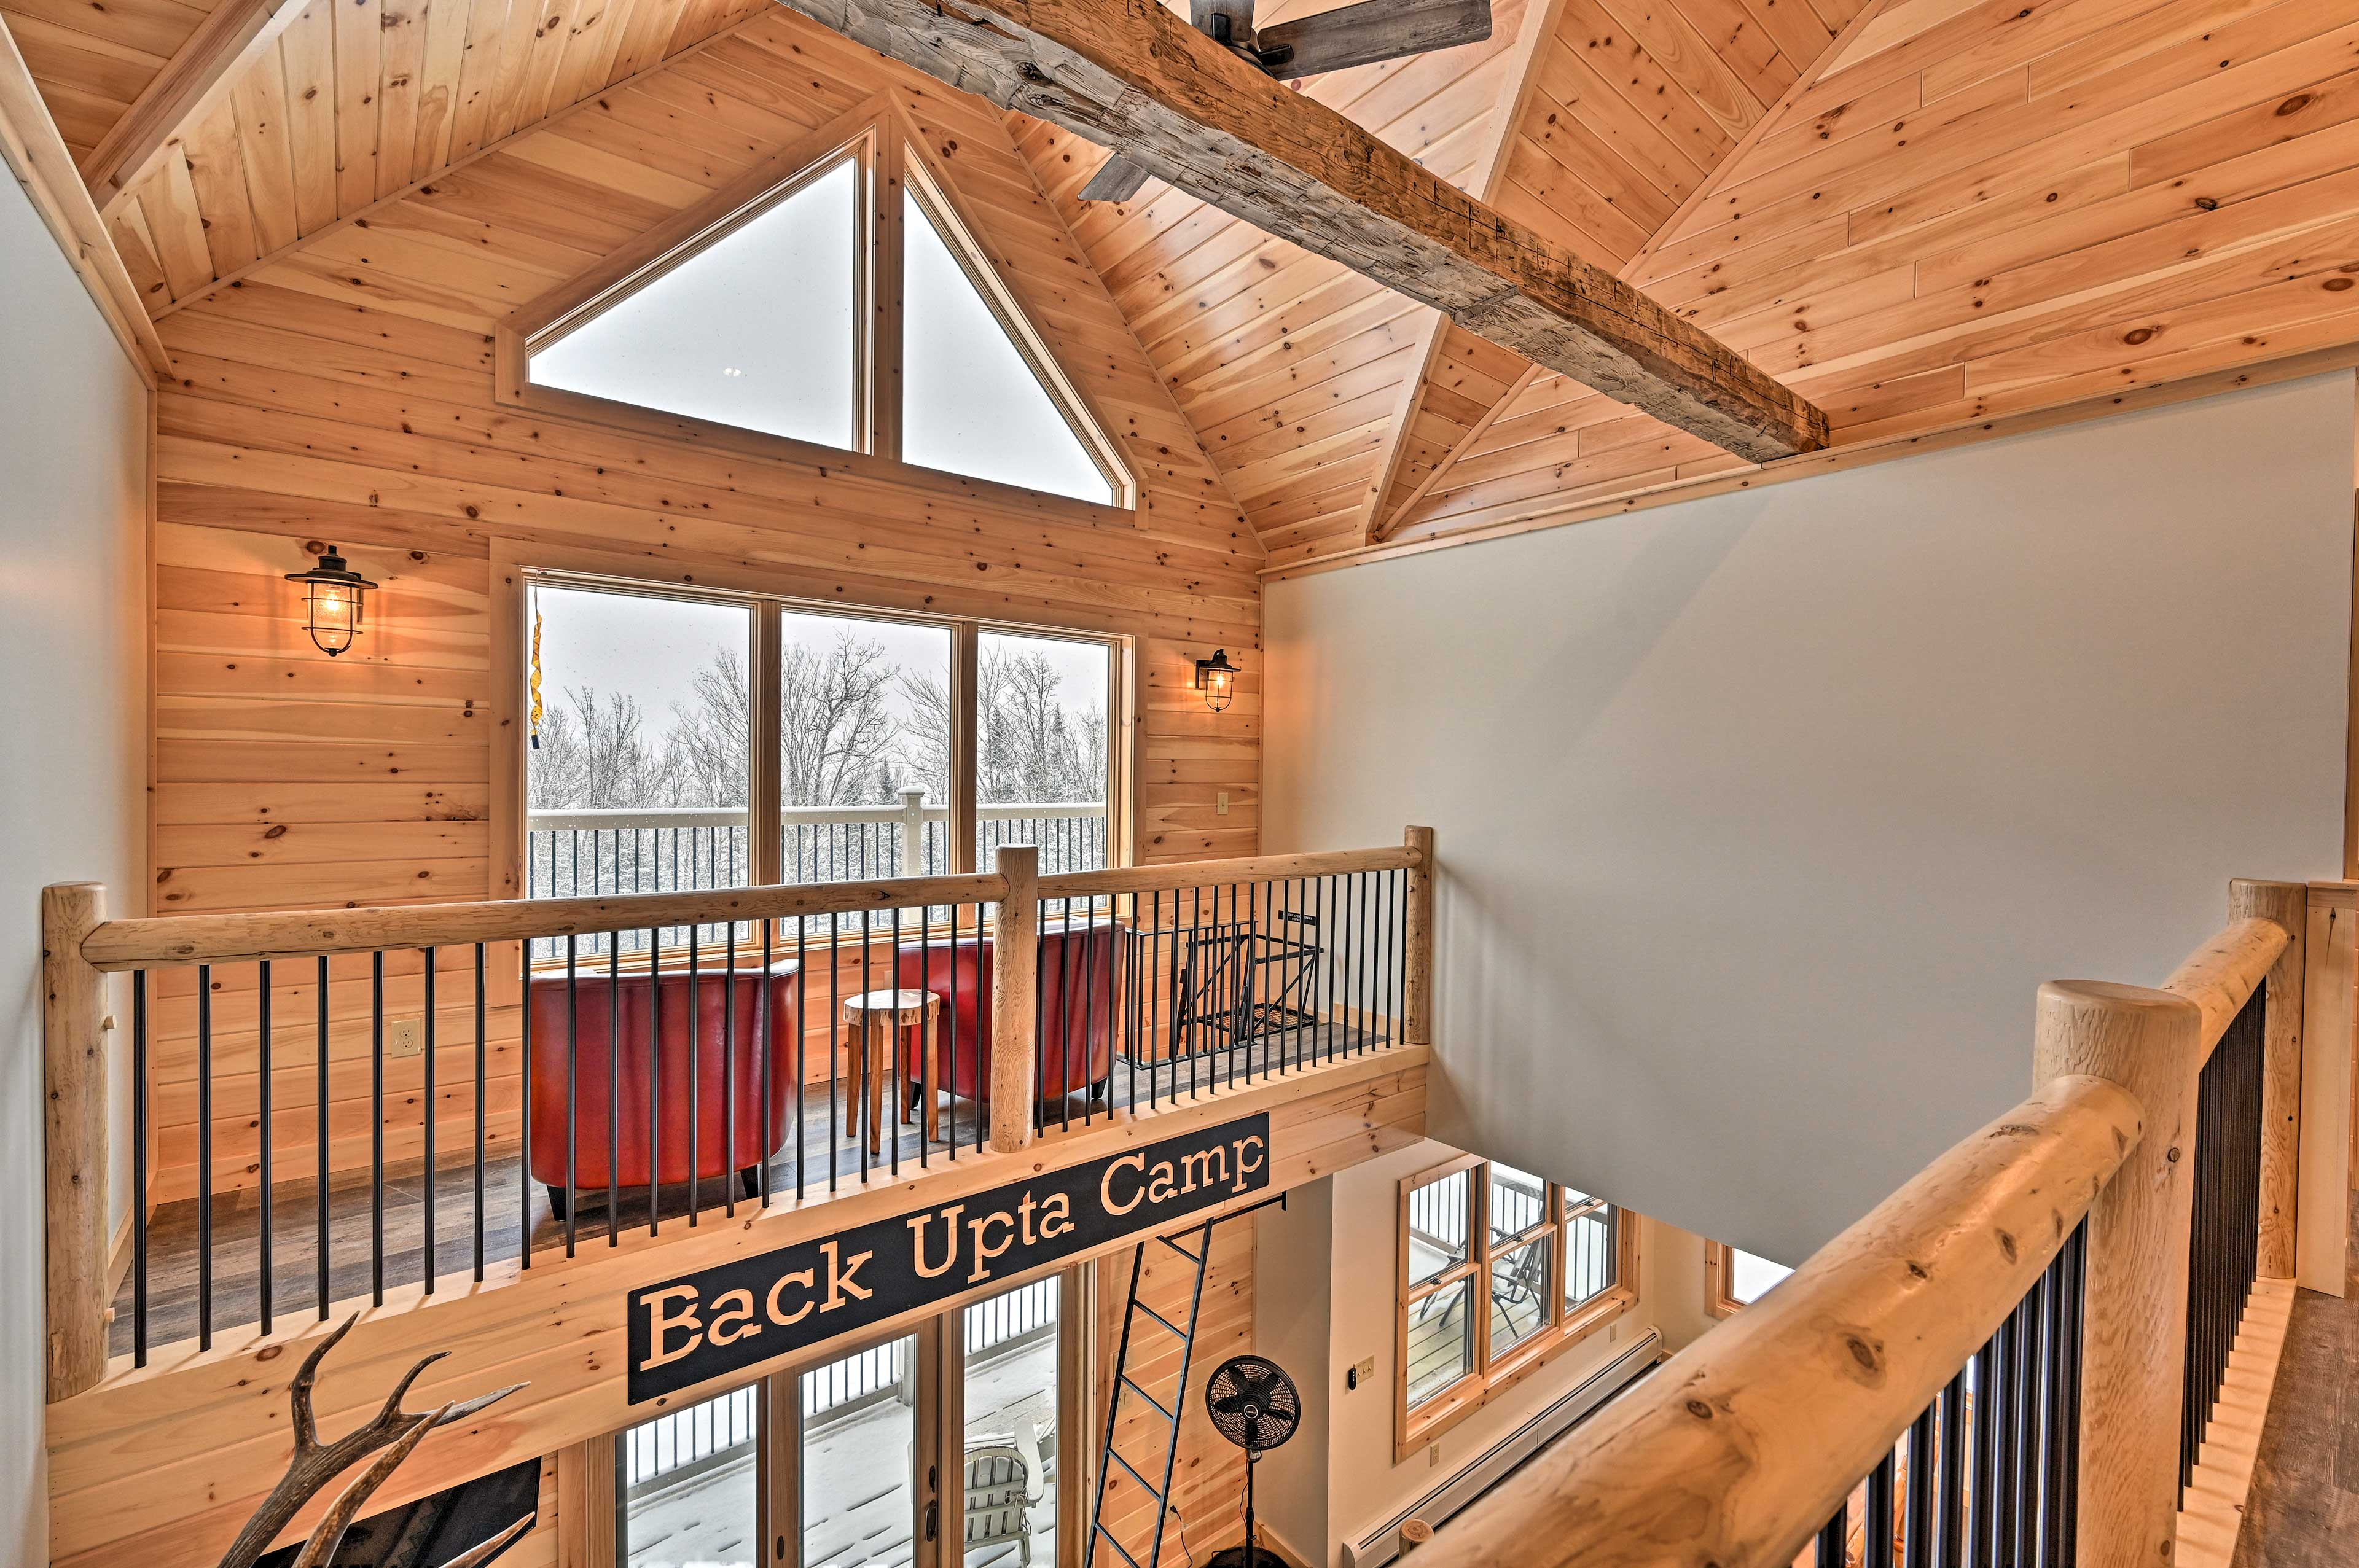 Drink your coffee in the lofted space overlooking the lake.